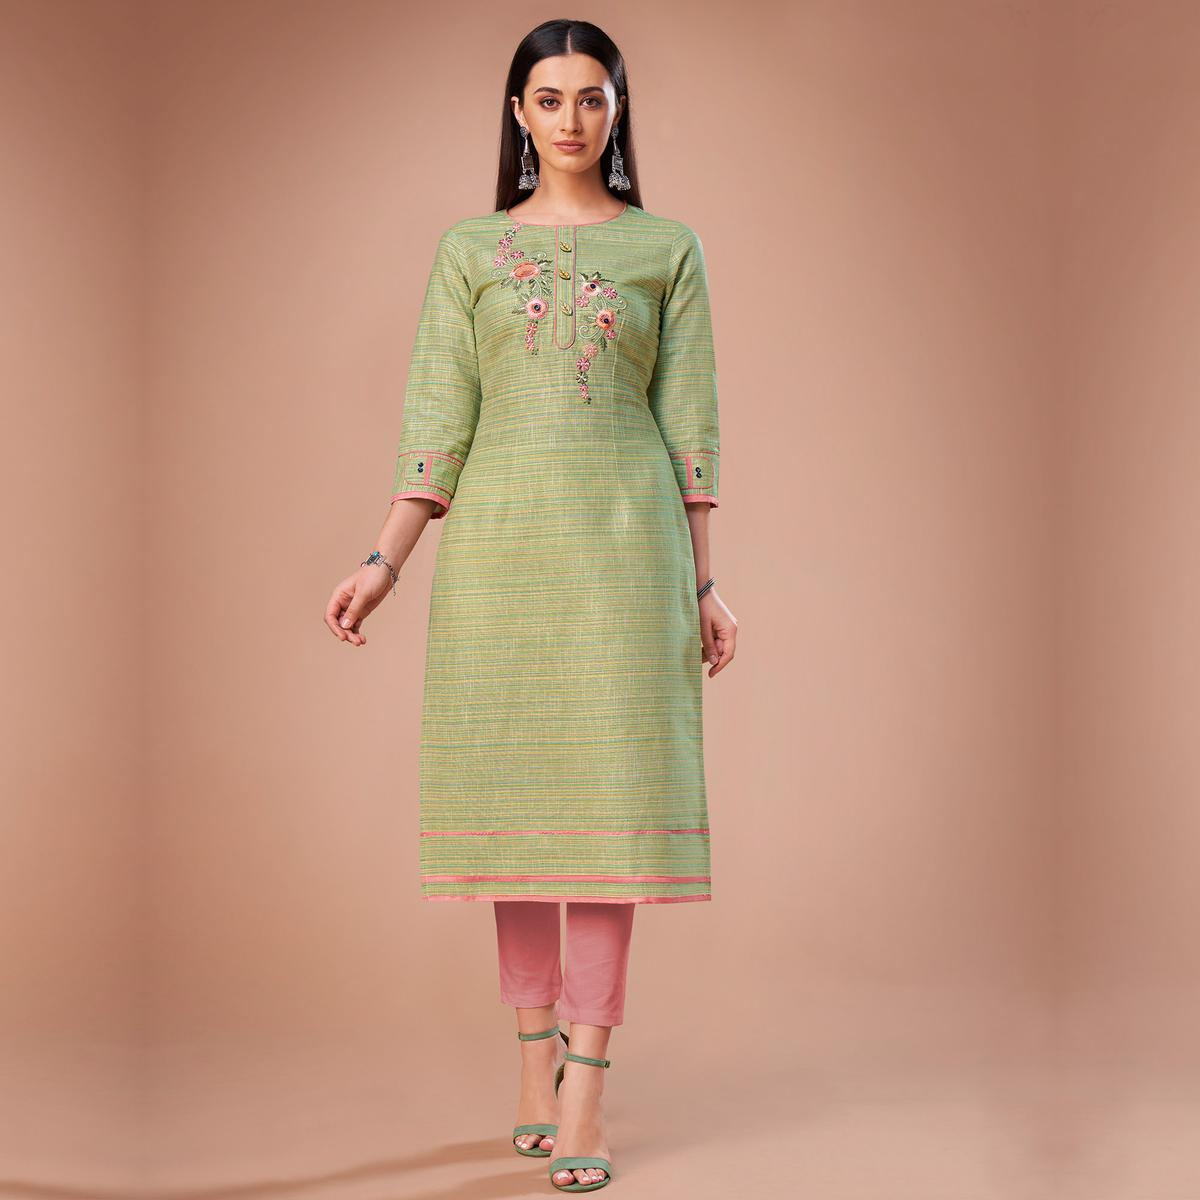 Marvellous Green Colored Partywear Embroidered Cotton Kurti